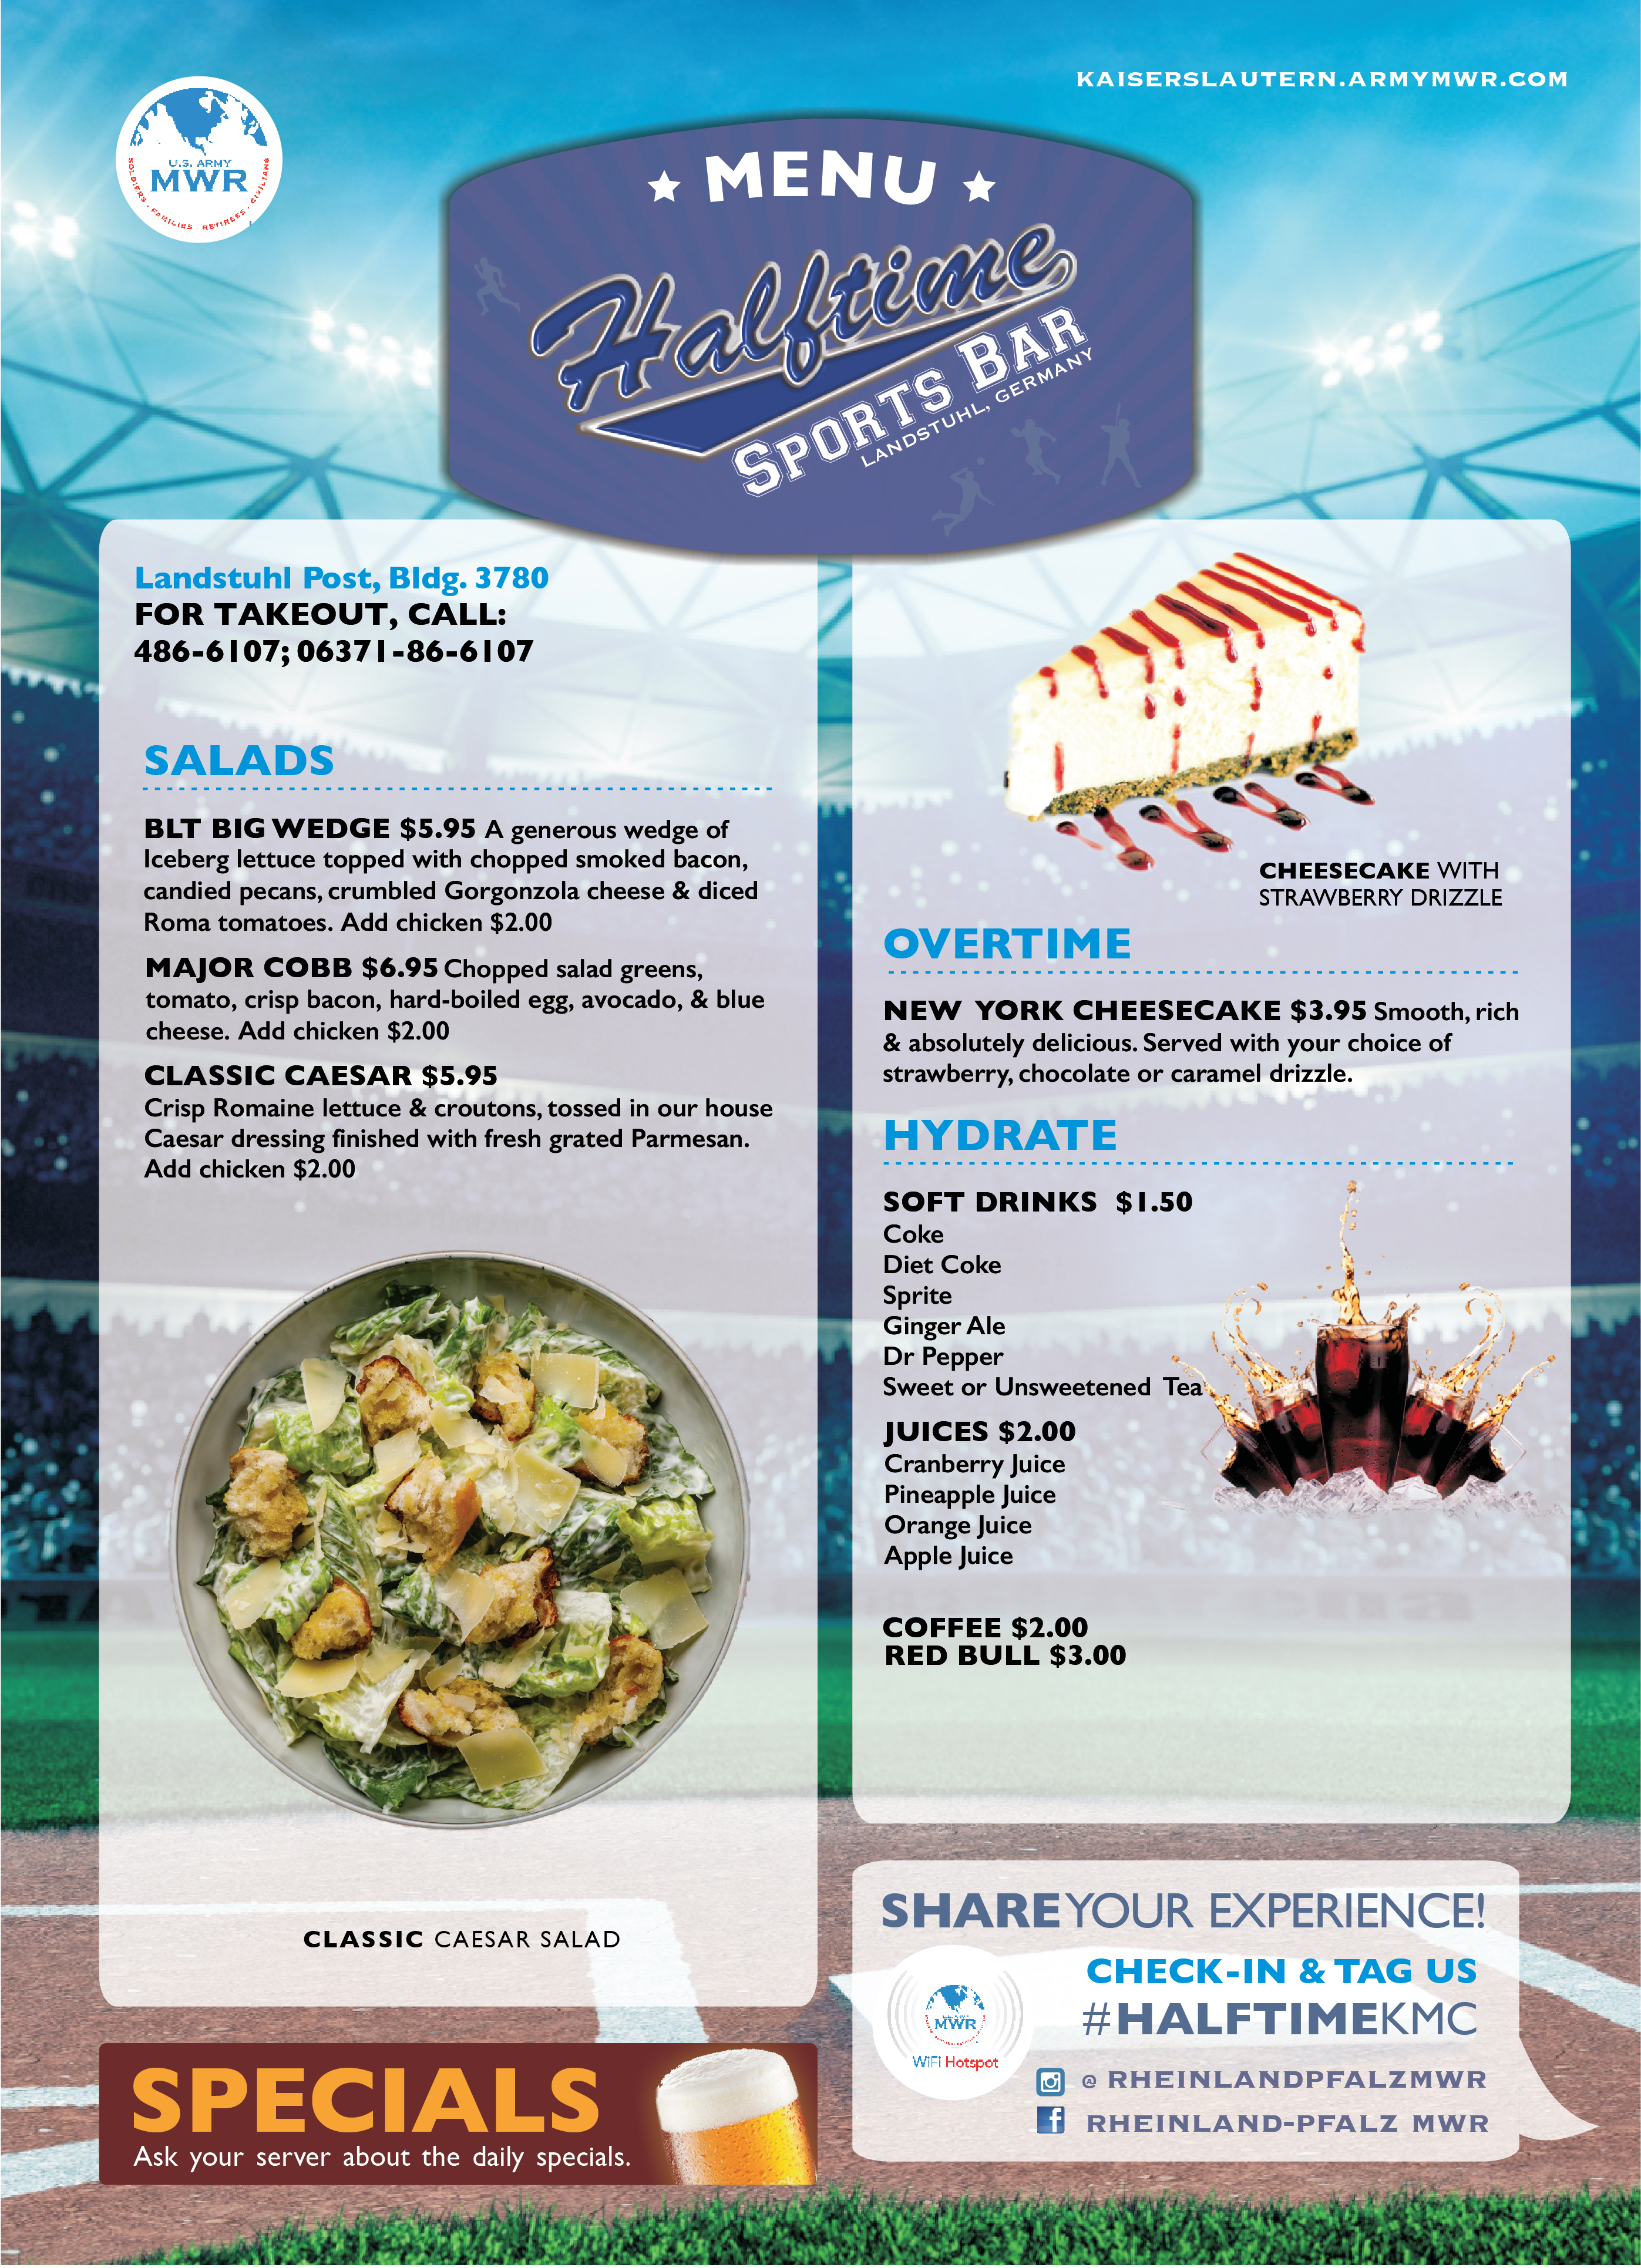 KL Halftime Sprots Bar Menu Print 230 by 320 mm May2020 PAGE 2-01.jpg